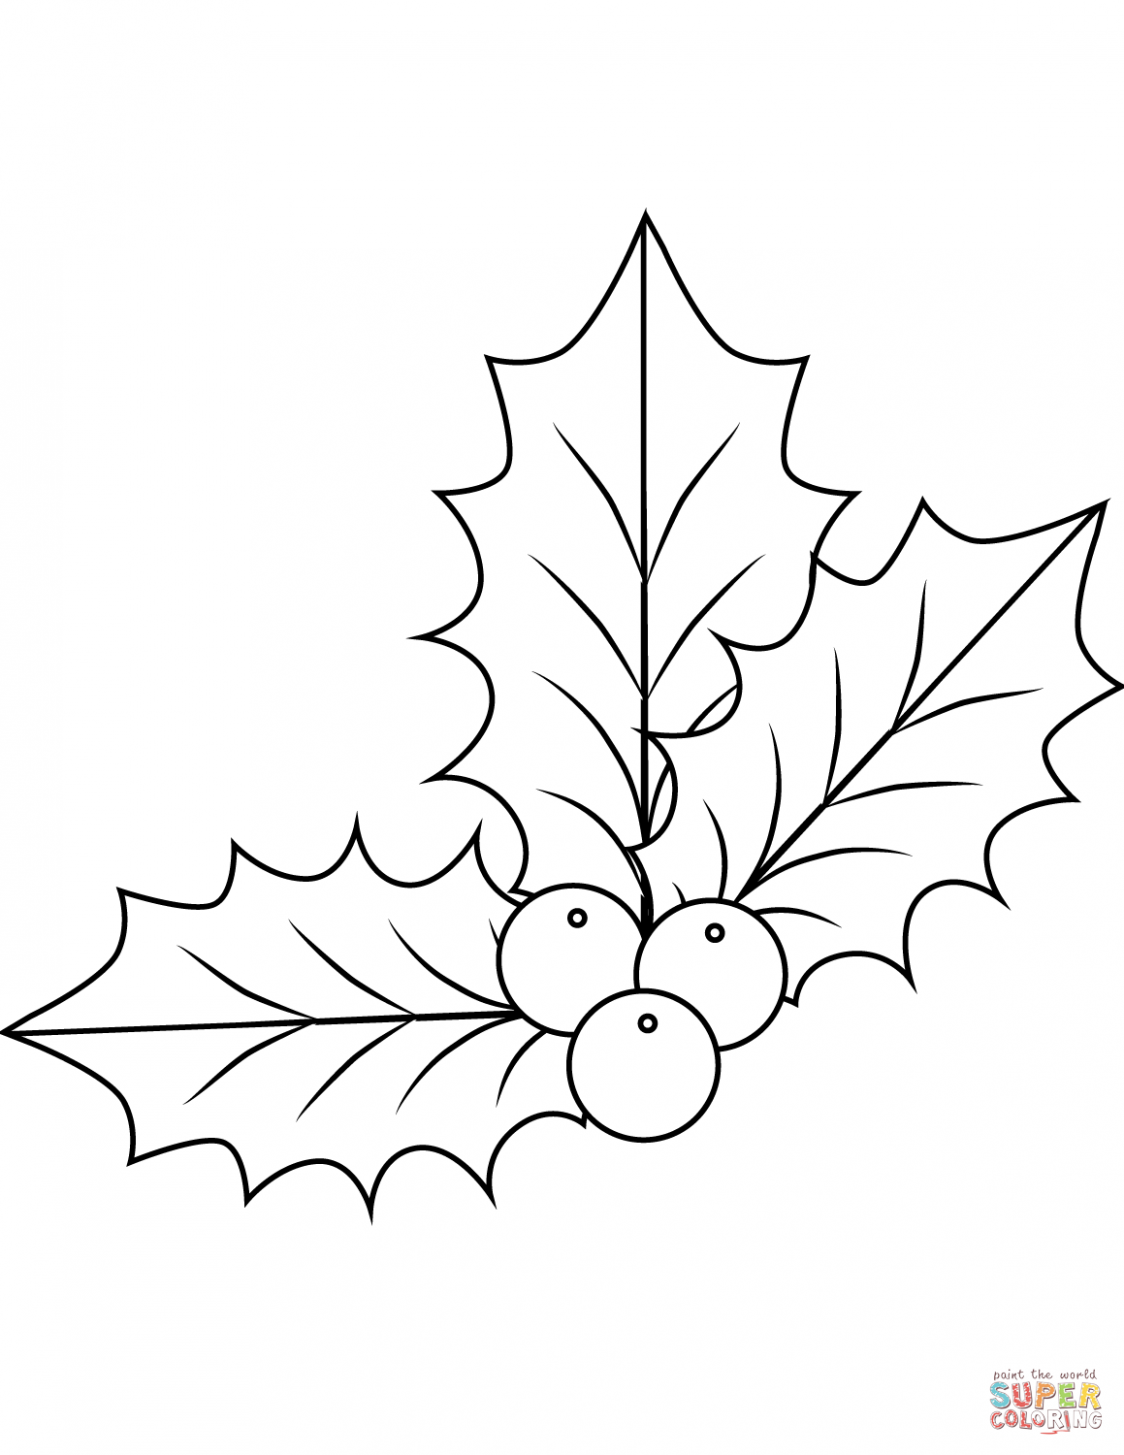 Xmas Holly coloring page | Free Printable Coloring Pages